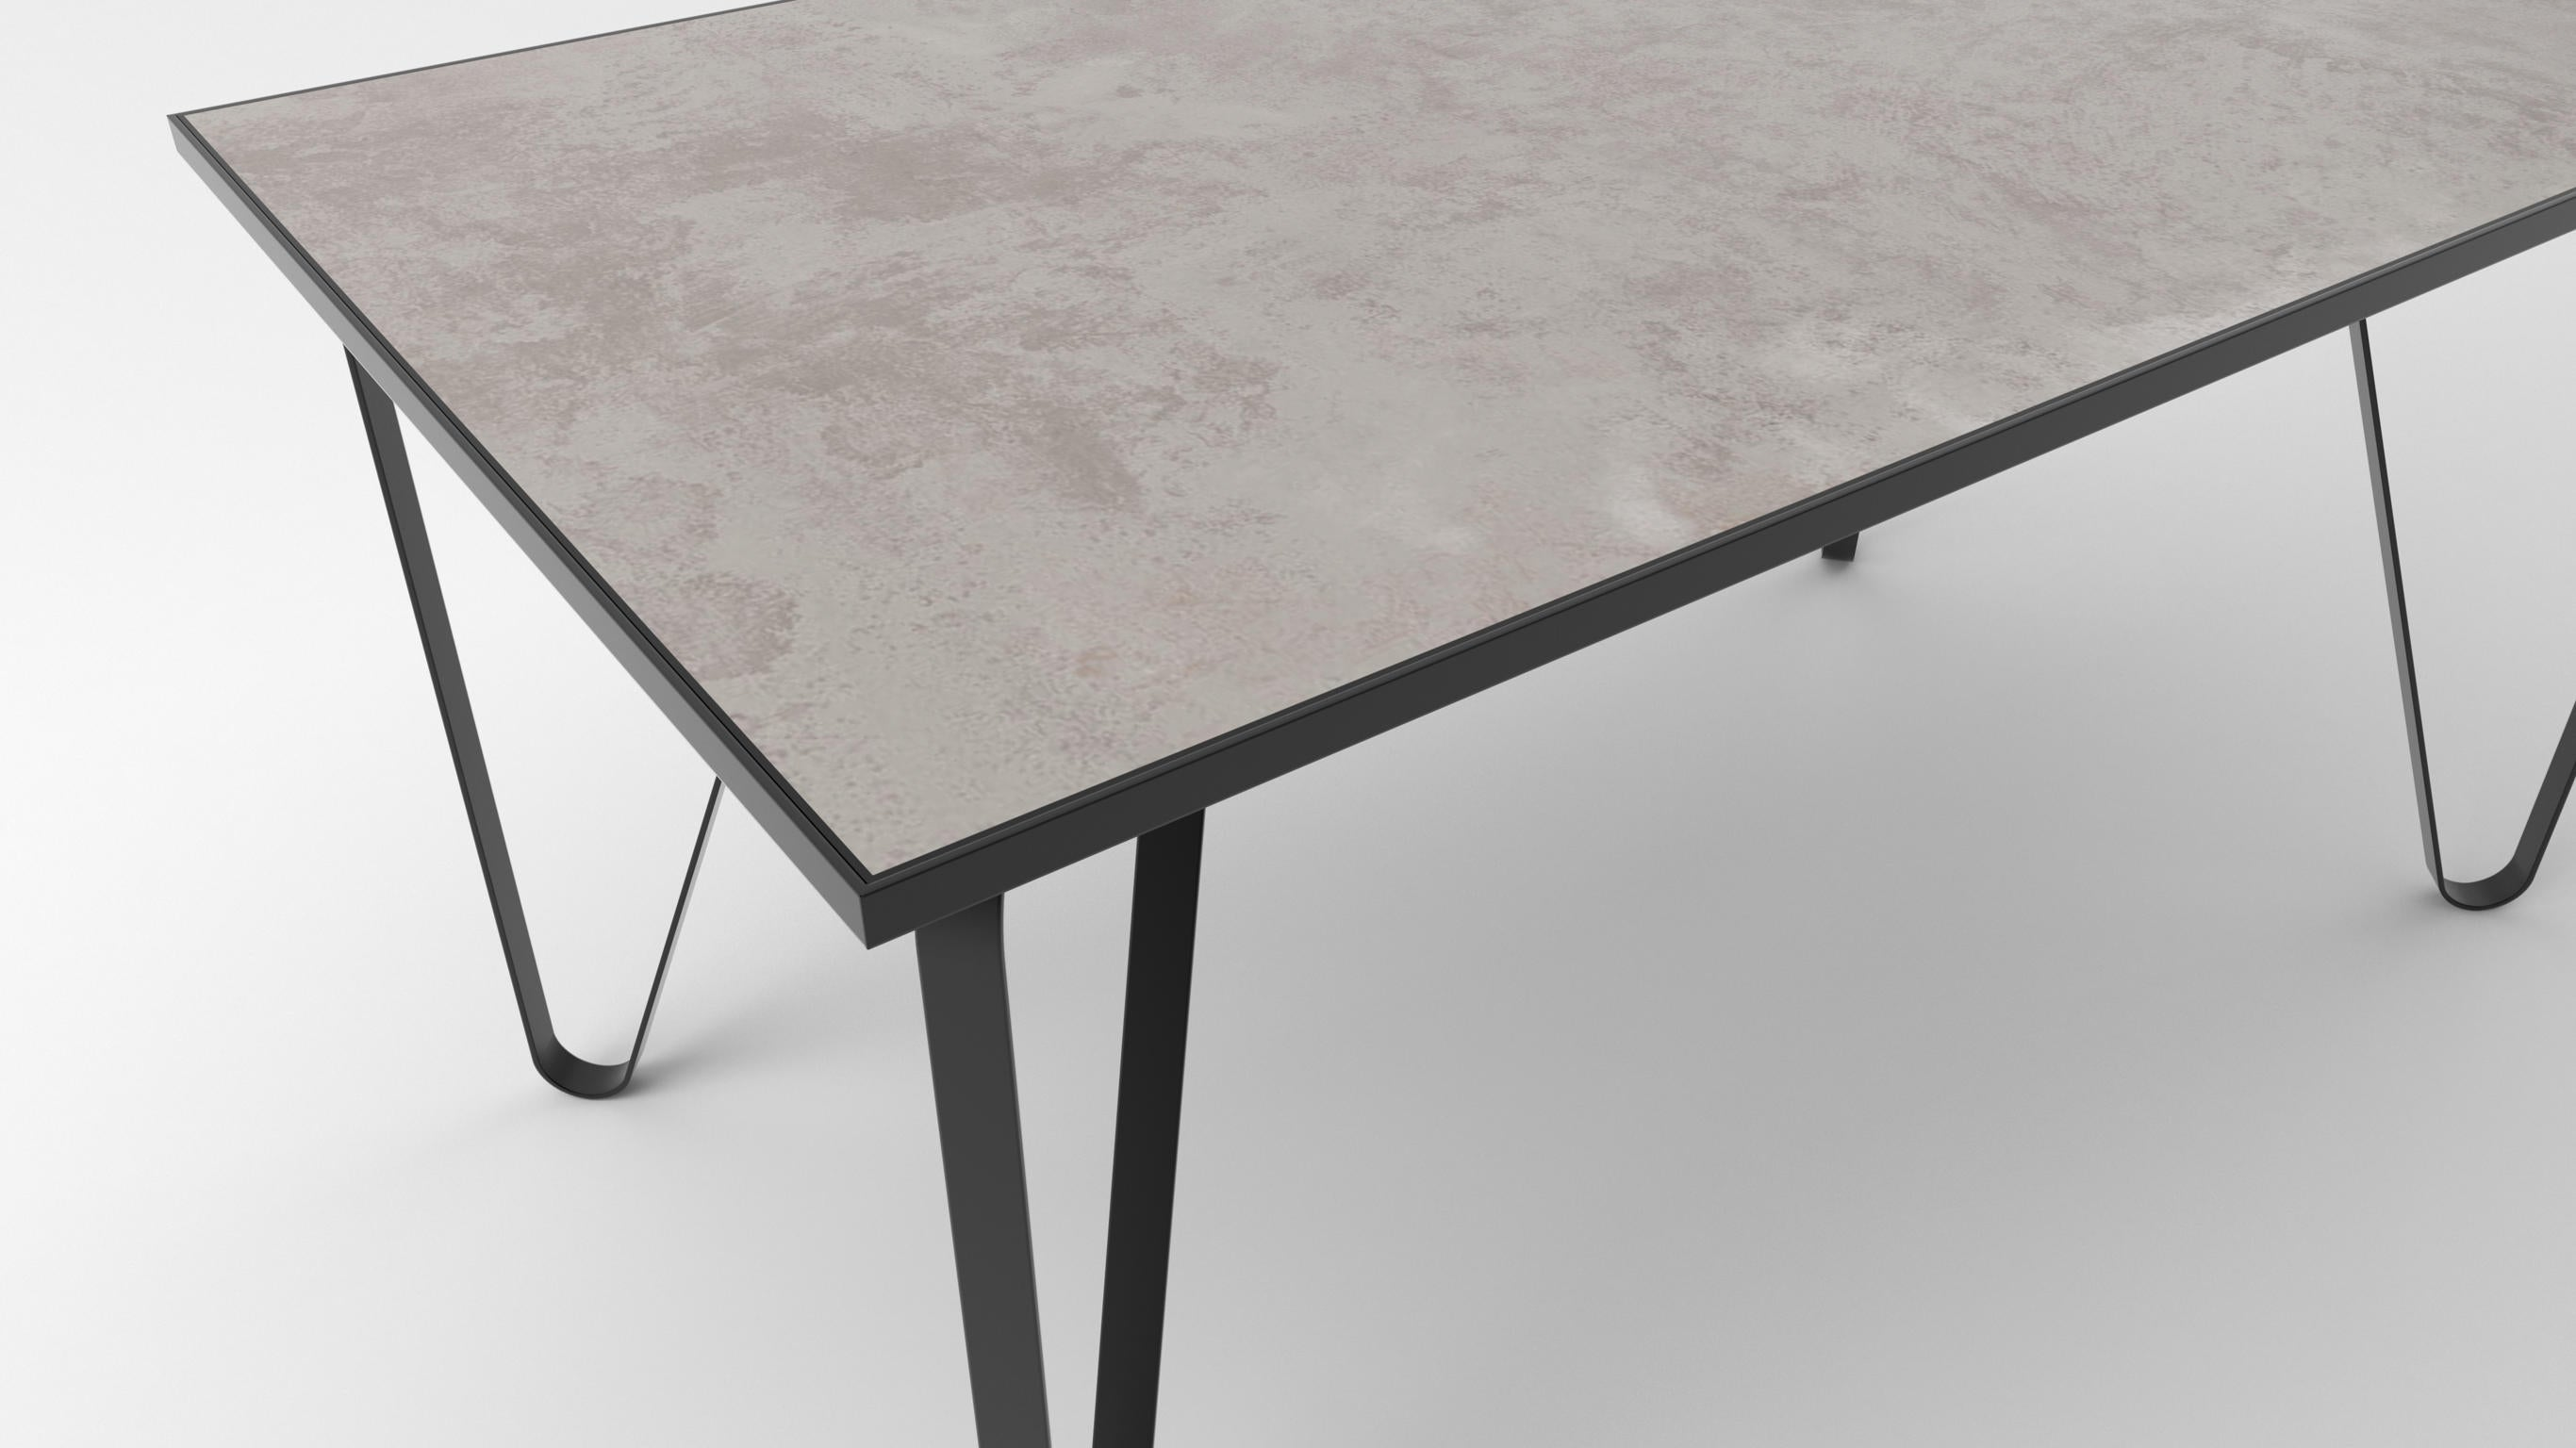 Ceramic tile table with black legs and italian tiles - Ettore